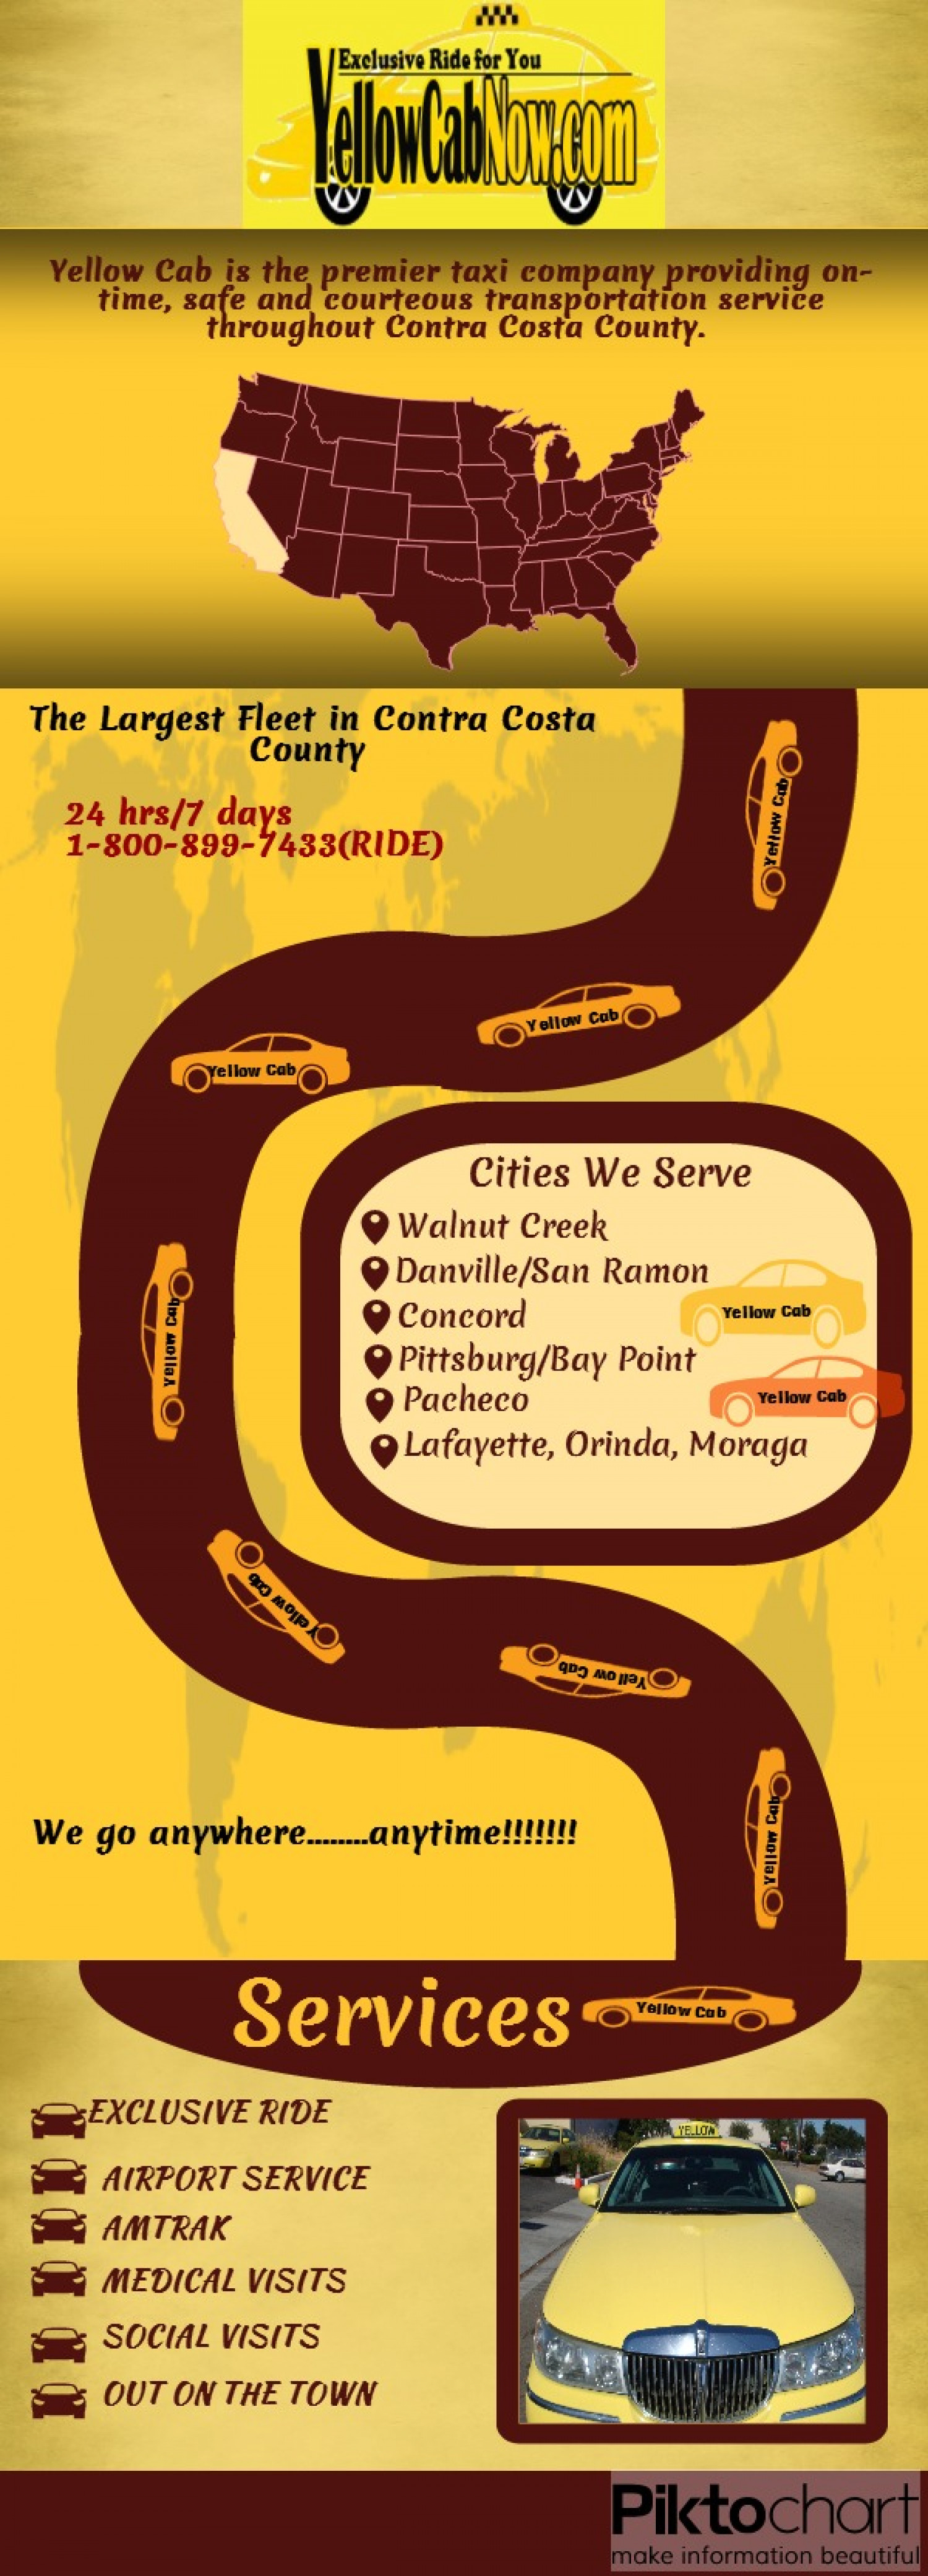 Yellow Cab Services throughout Contra Costa County Infographic